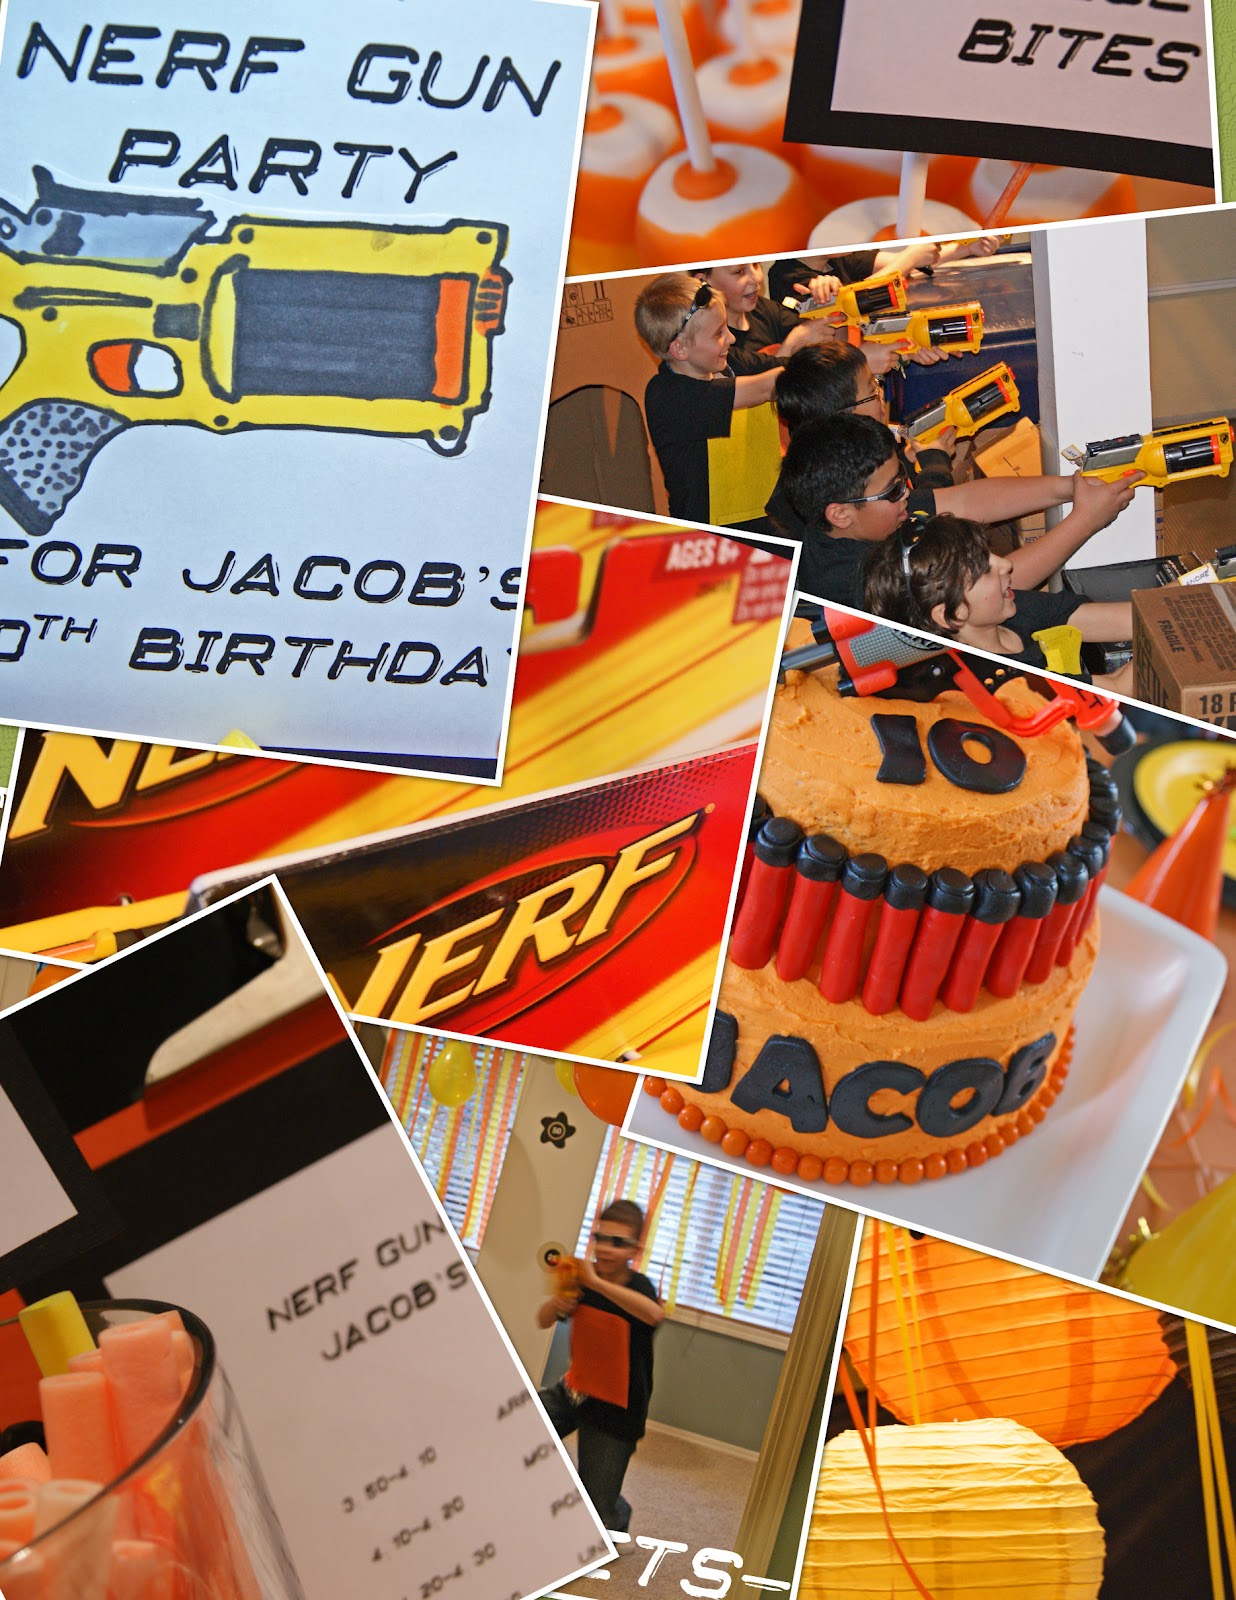 michelle paige blogs: nerf gun party!